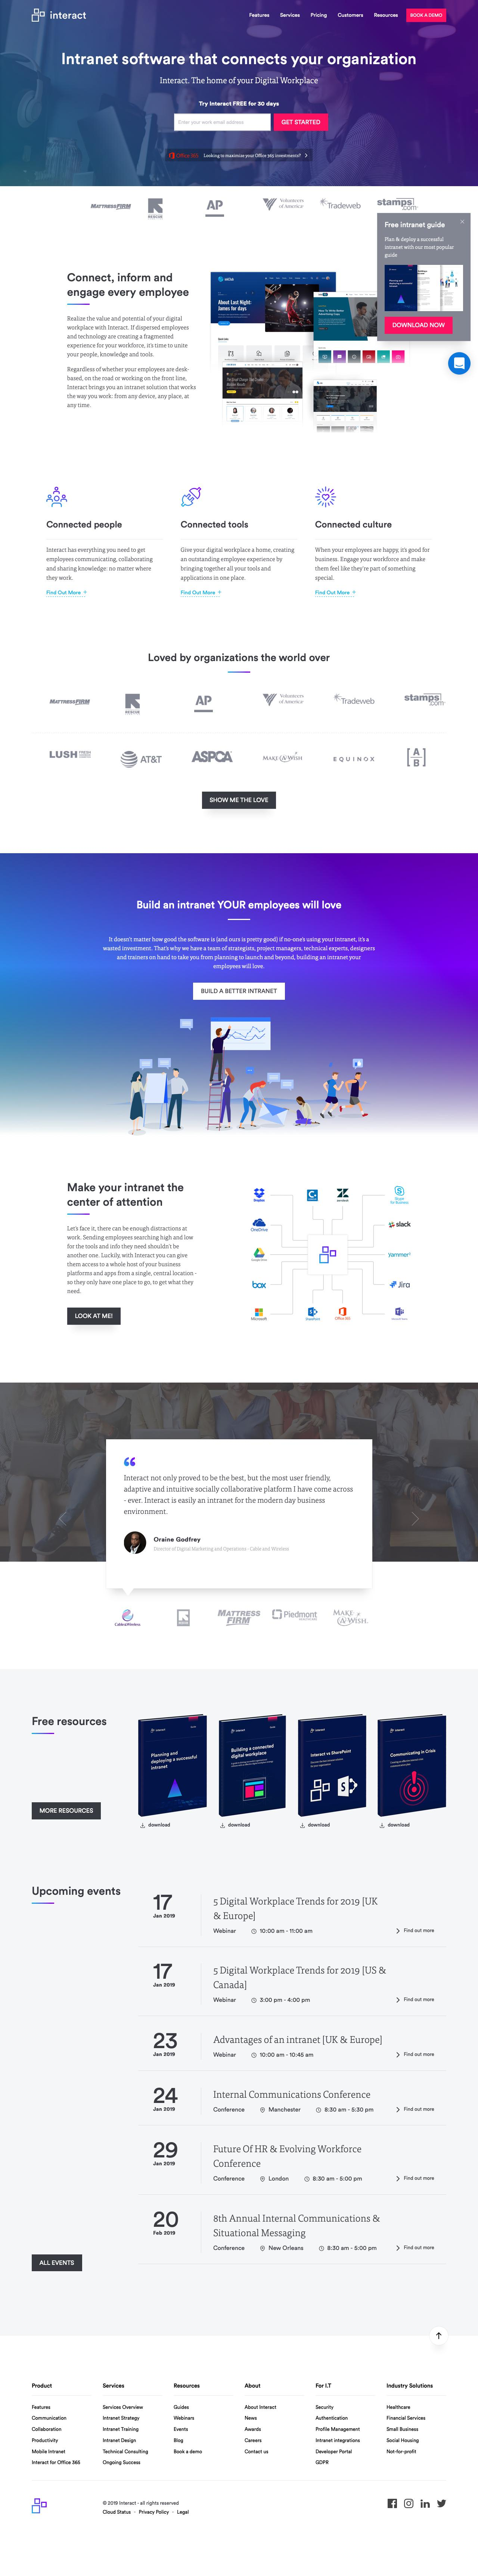 Screenshot of interact-intranet.com - Intranet Software That Connects Your Organization | Interact Software - captured Jan. 8, 2019